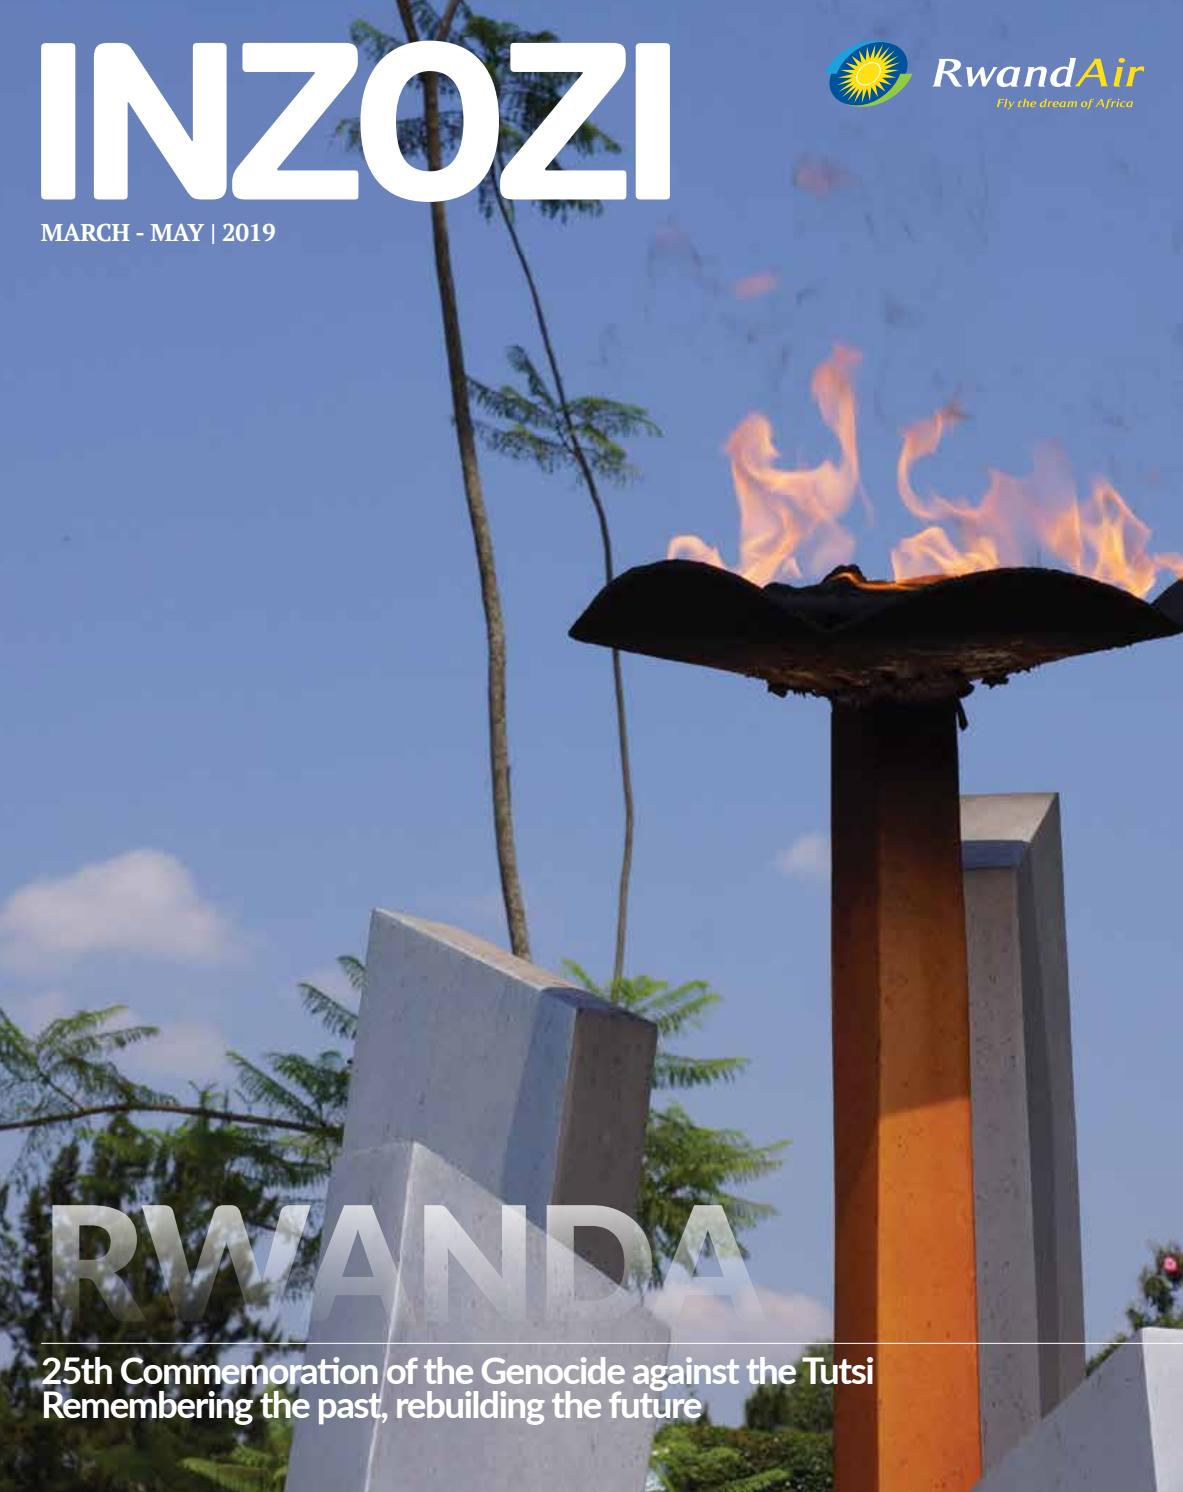 Terrasse Du Port Nike Rwandair Inzozi Magazine March 2019 By Inzozi Magazine Issuu